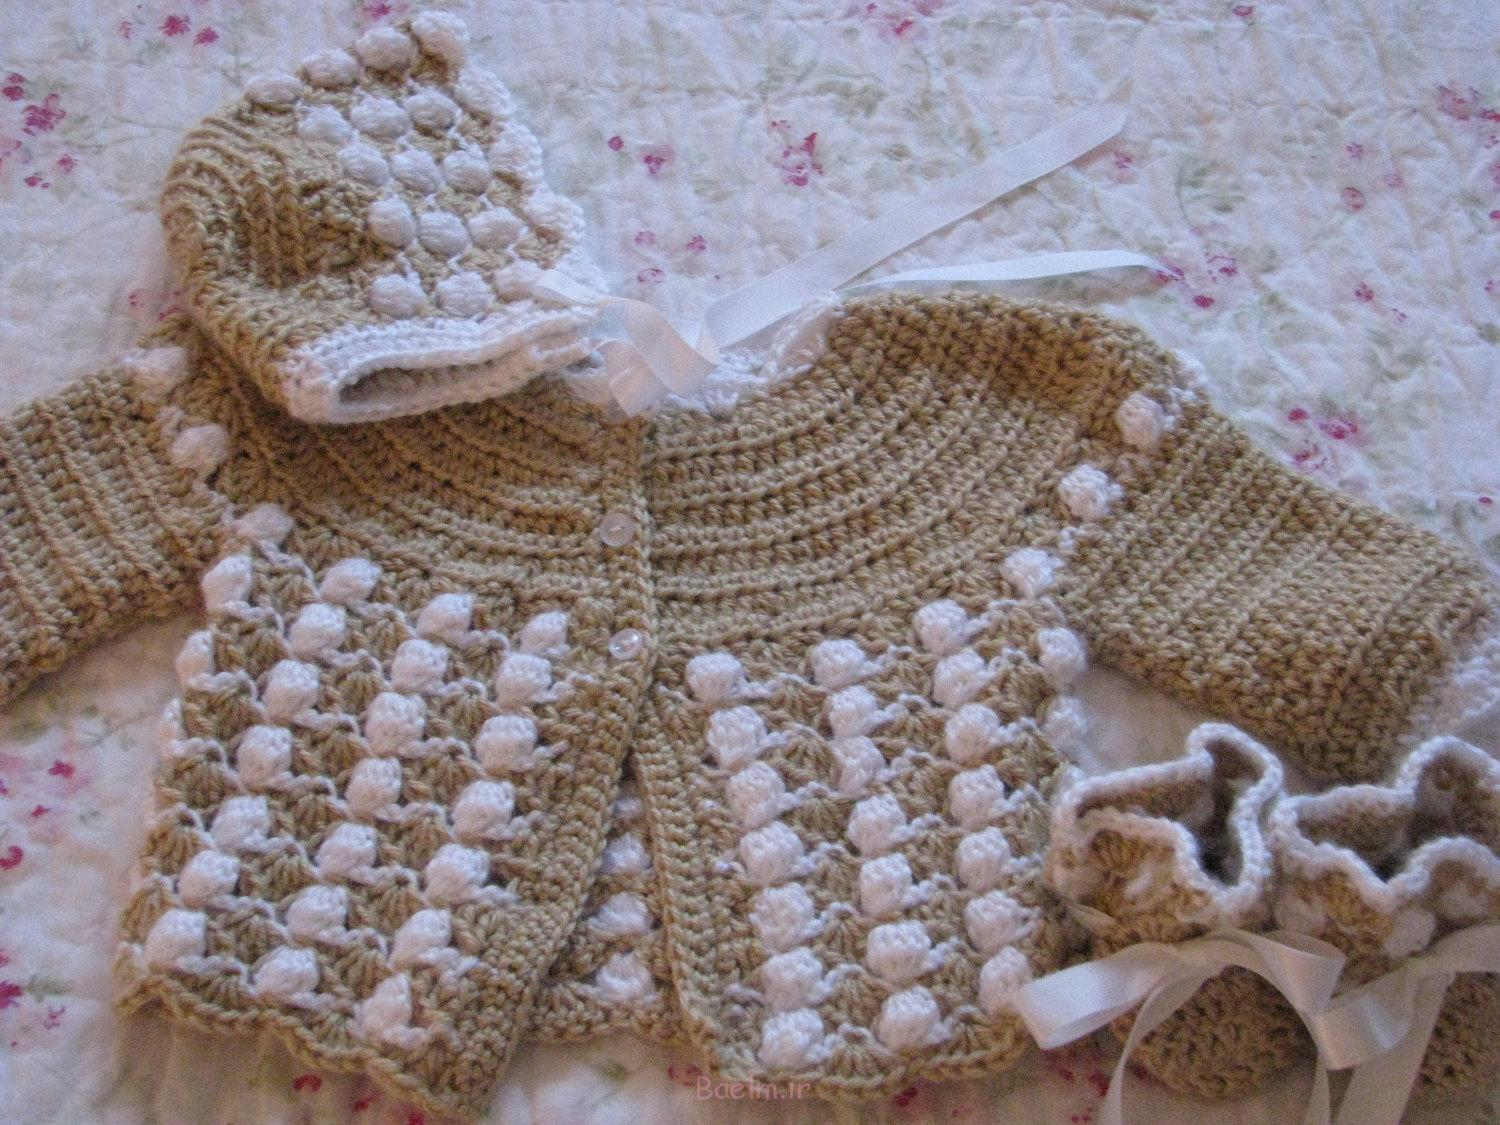 Best Crocheted Sweaters for Newborn Babies (7)